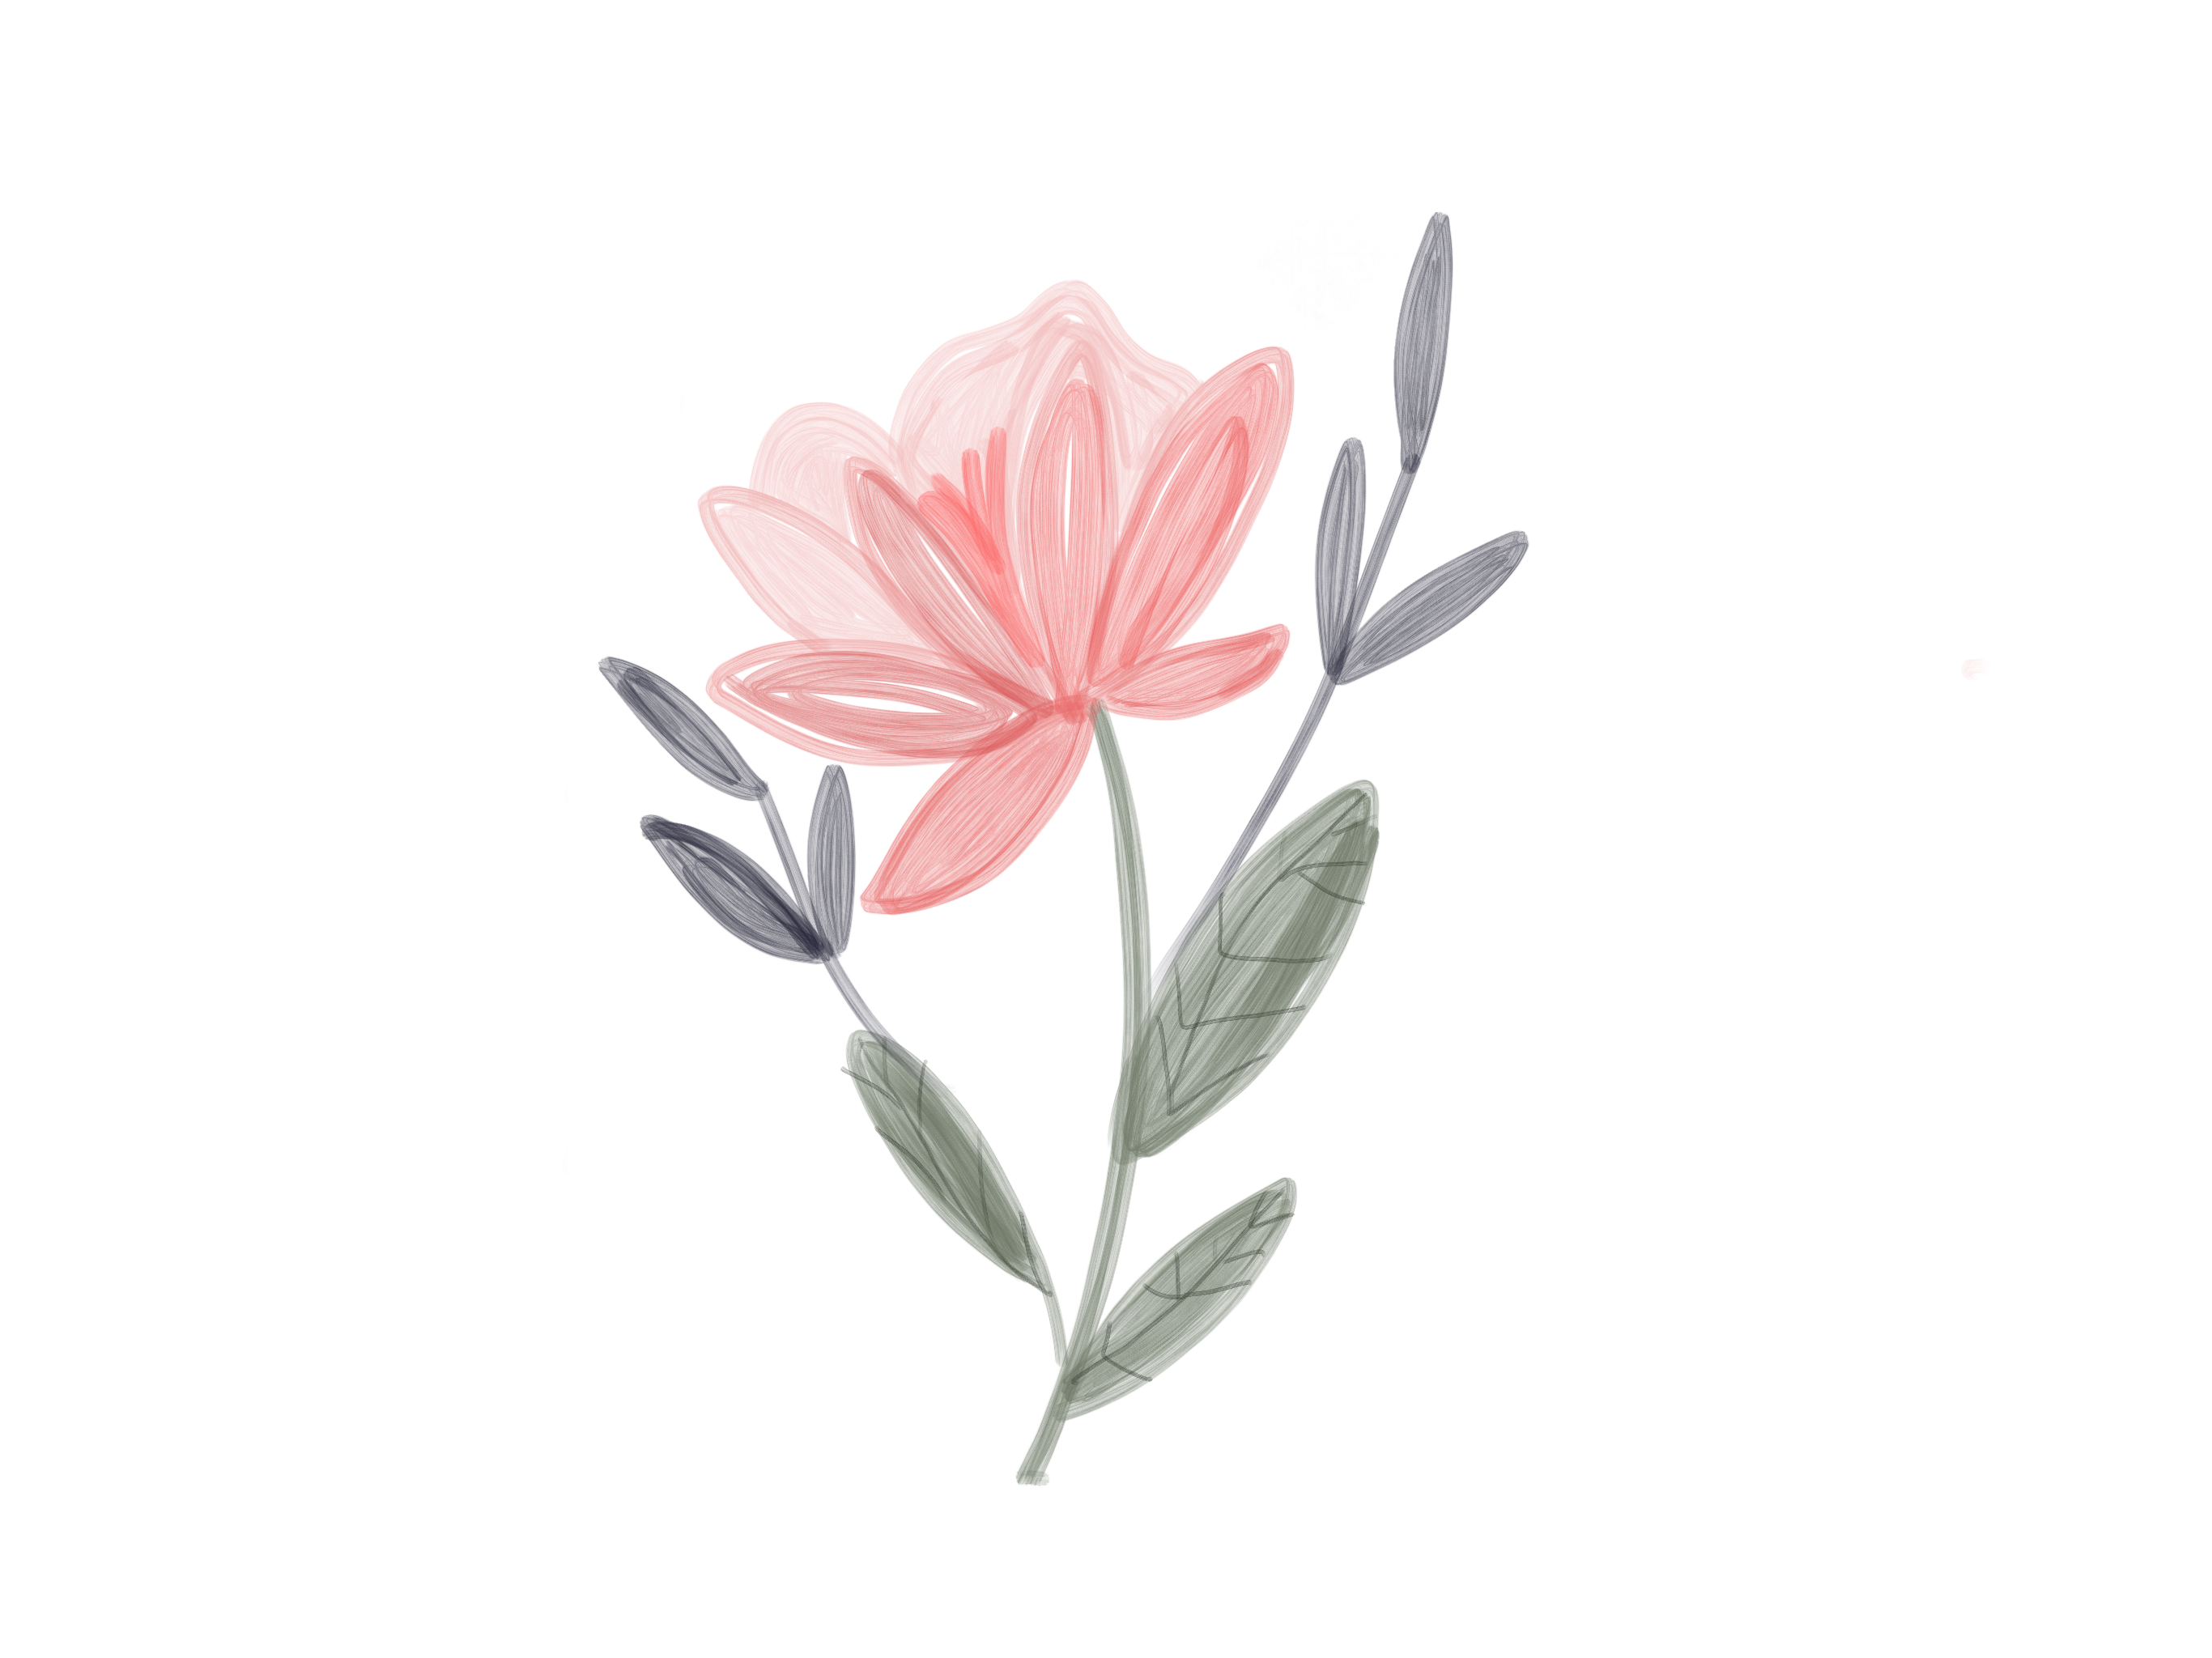 Cute Illustrated Pink Flower